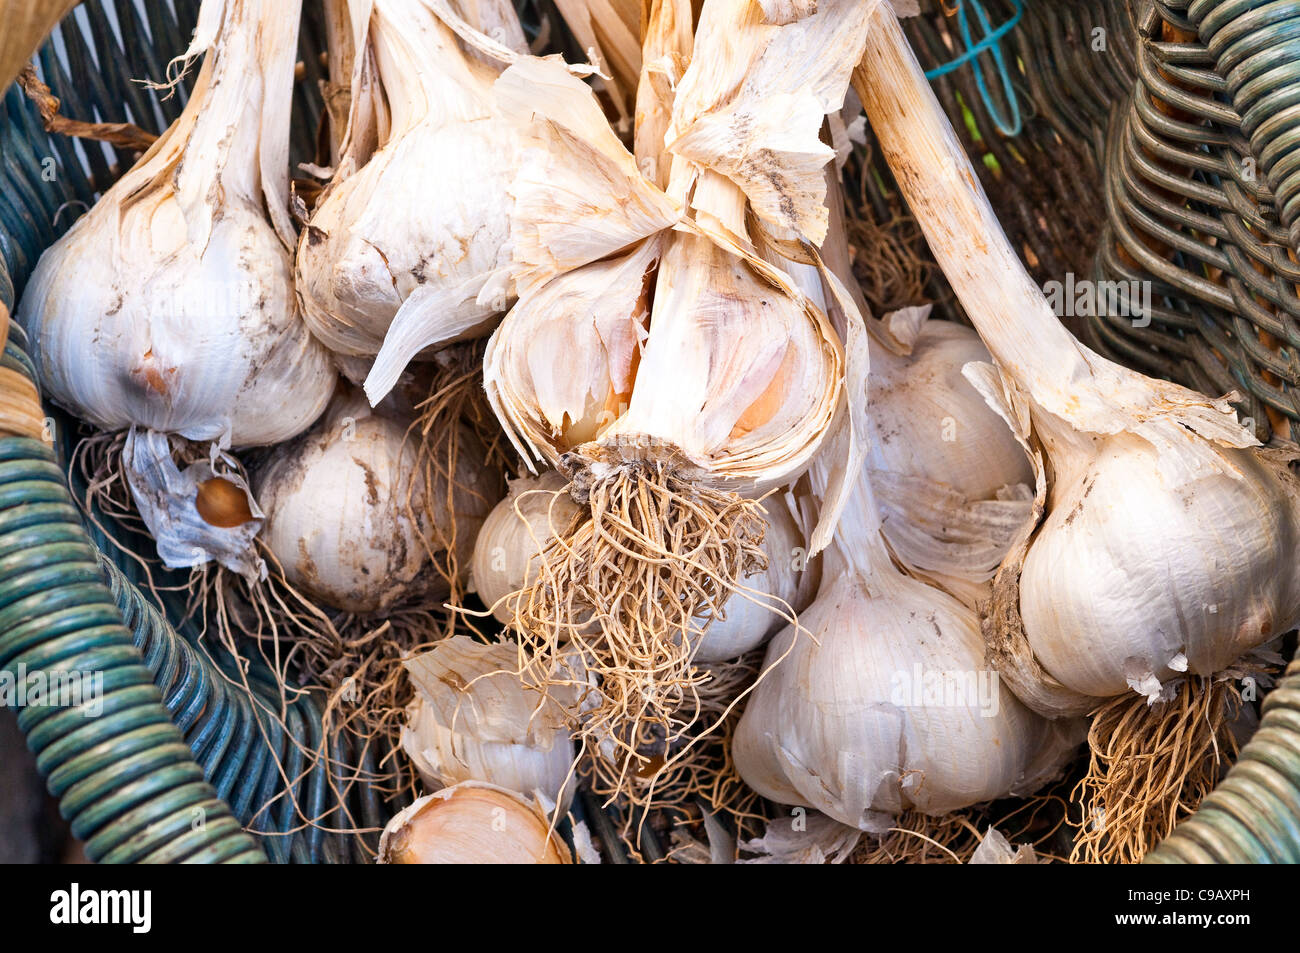 Bunch of Elephant Garlic / Allium ampeloprasum bulbs in wicker basket - France. - Stock Image